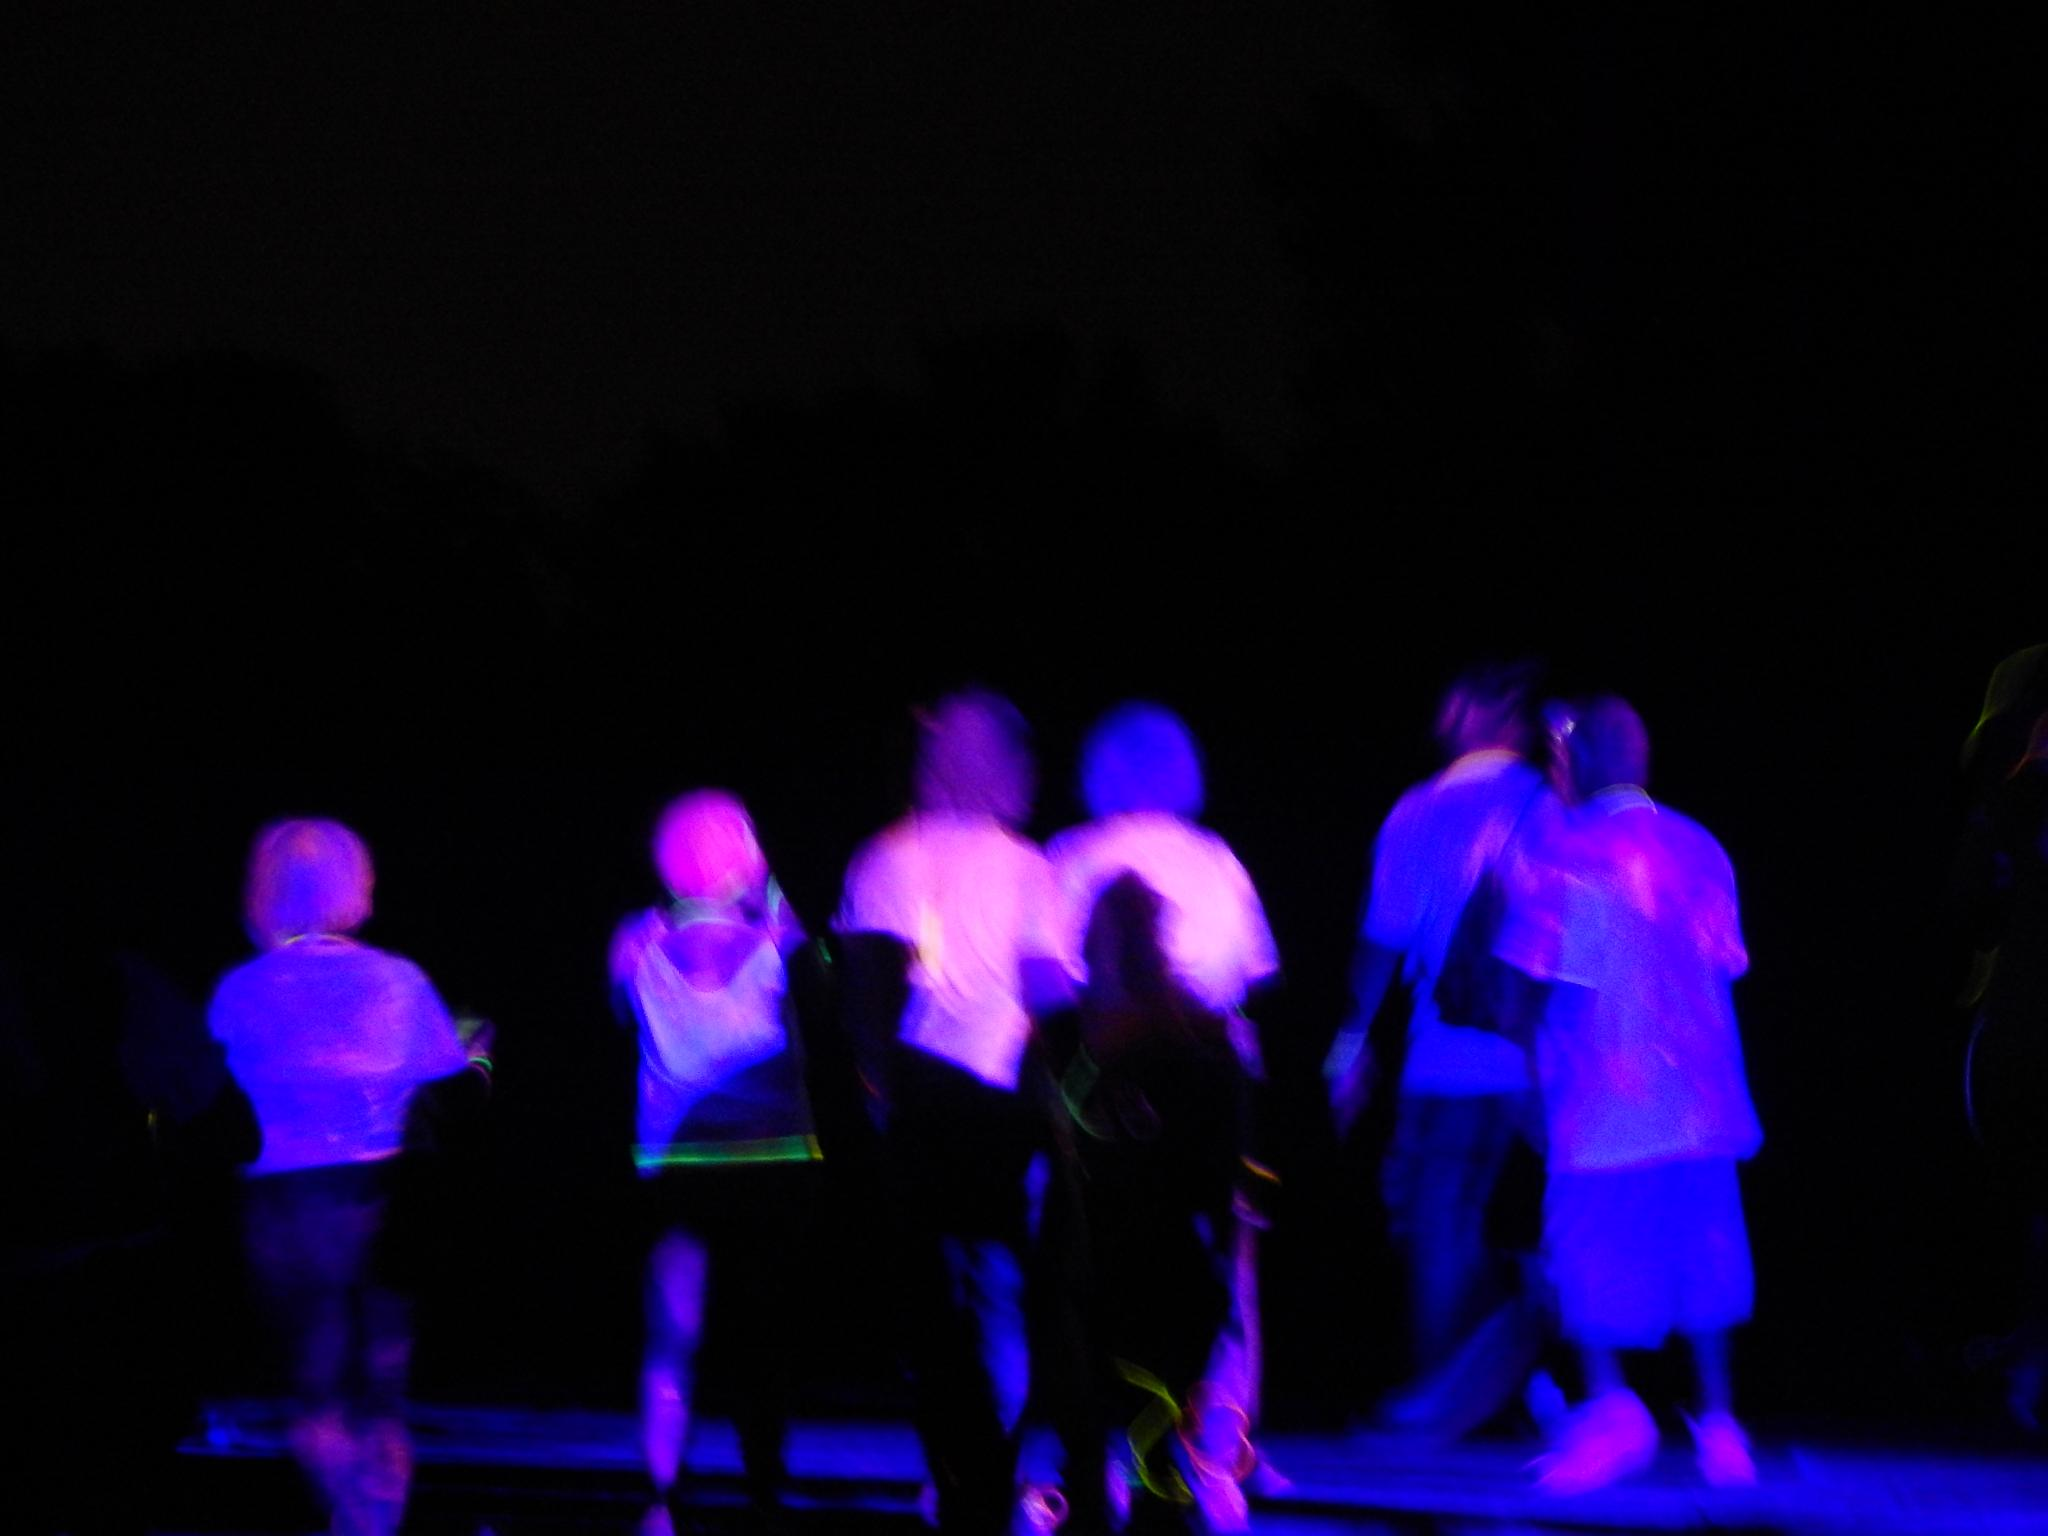 People painted and standing in Blacklight by mythree03